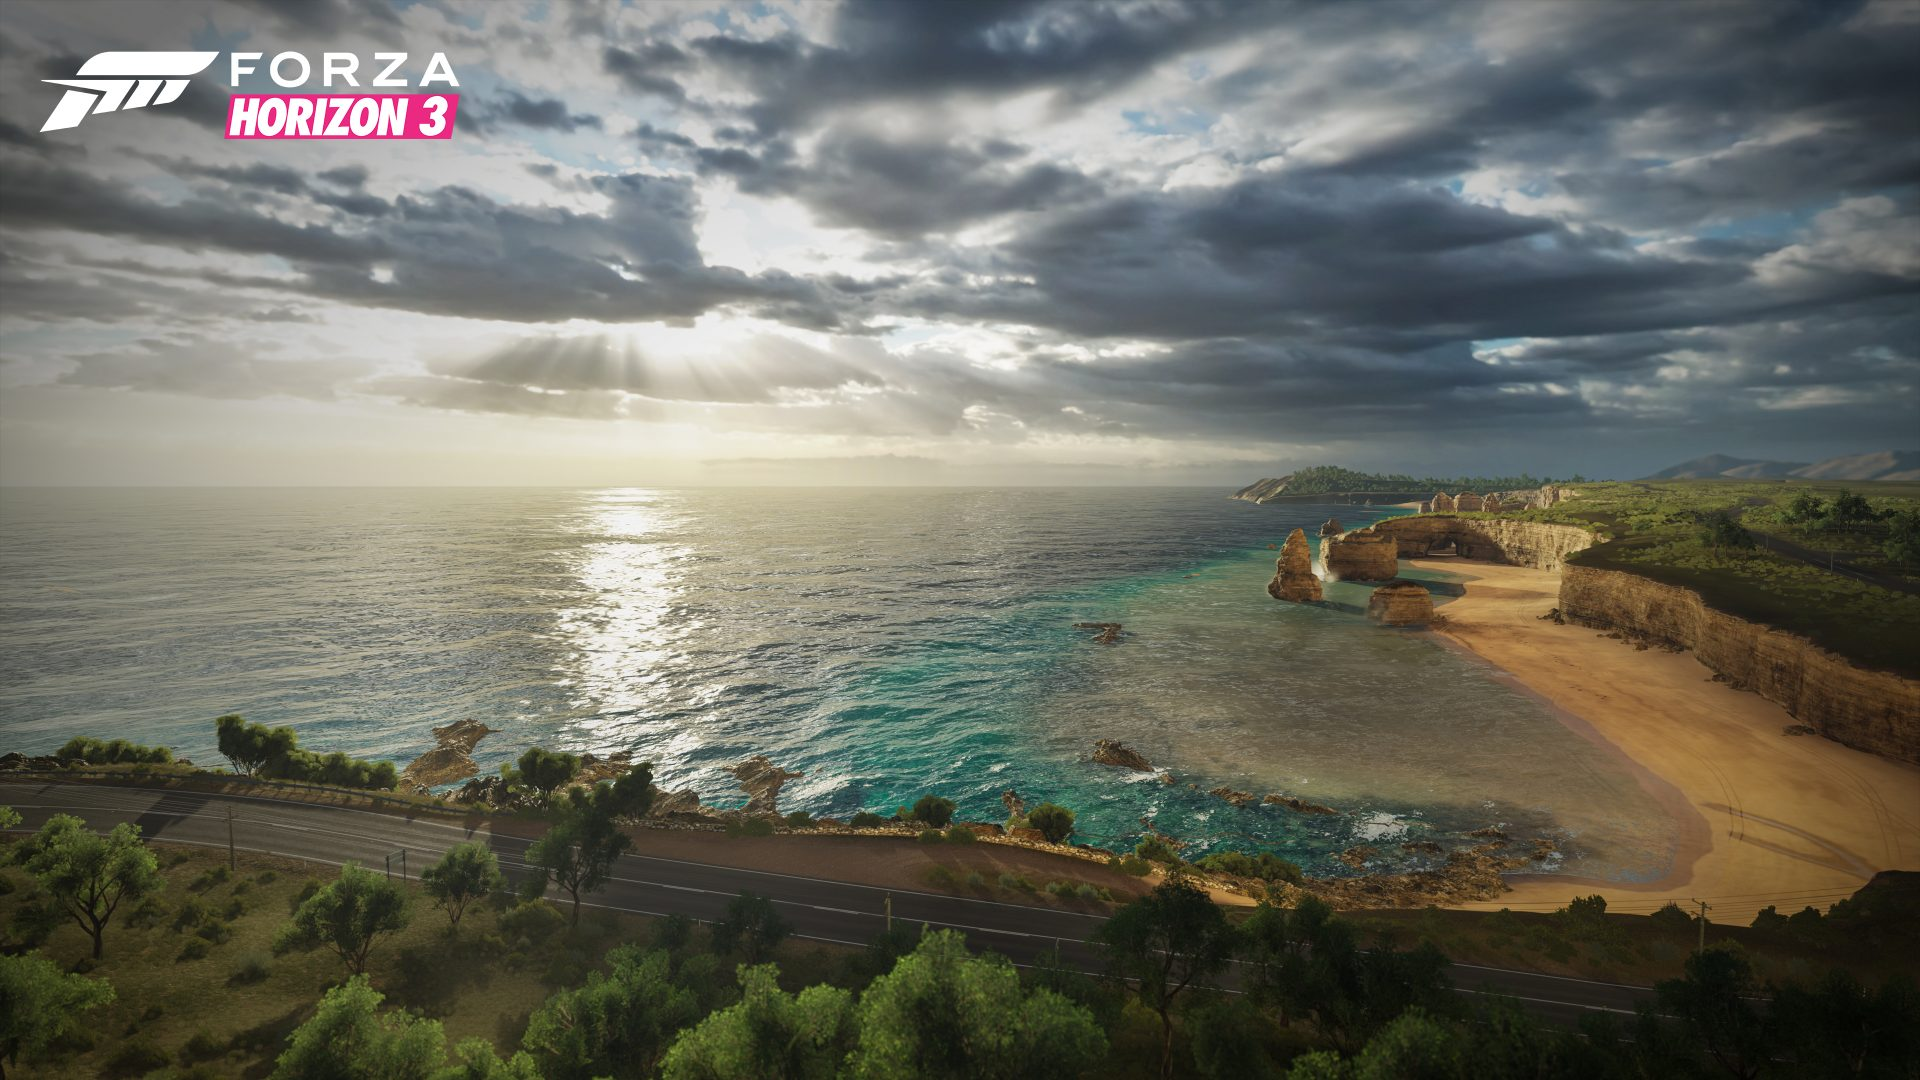 Xbox One X enhancements zoom to Forza Horizon 3